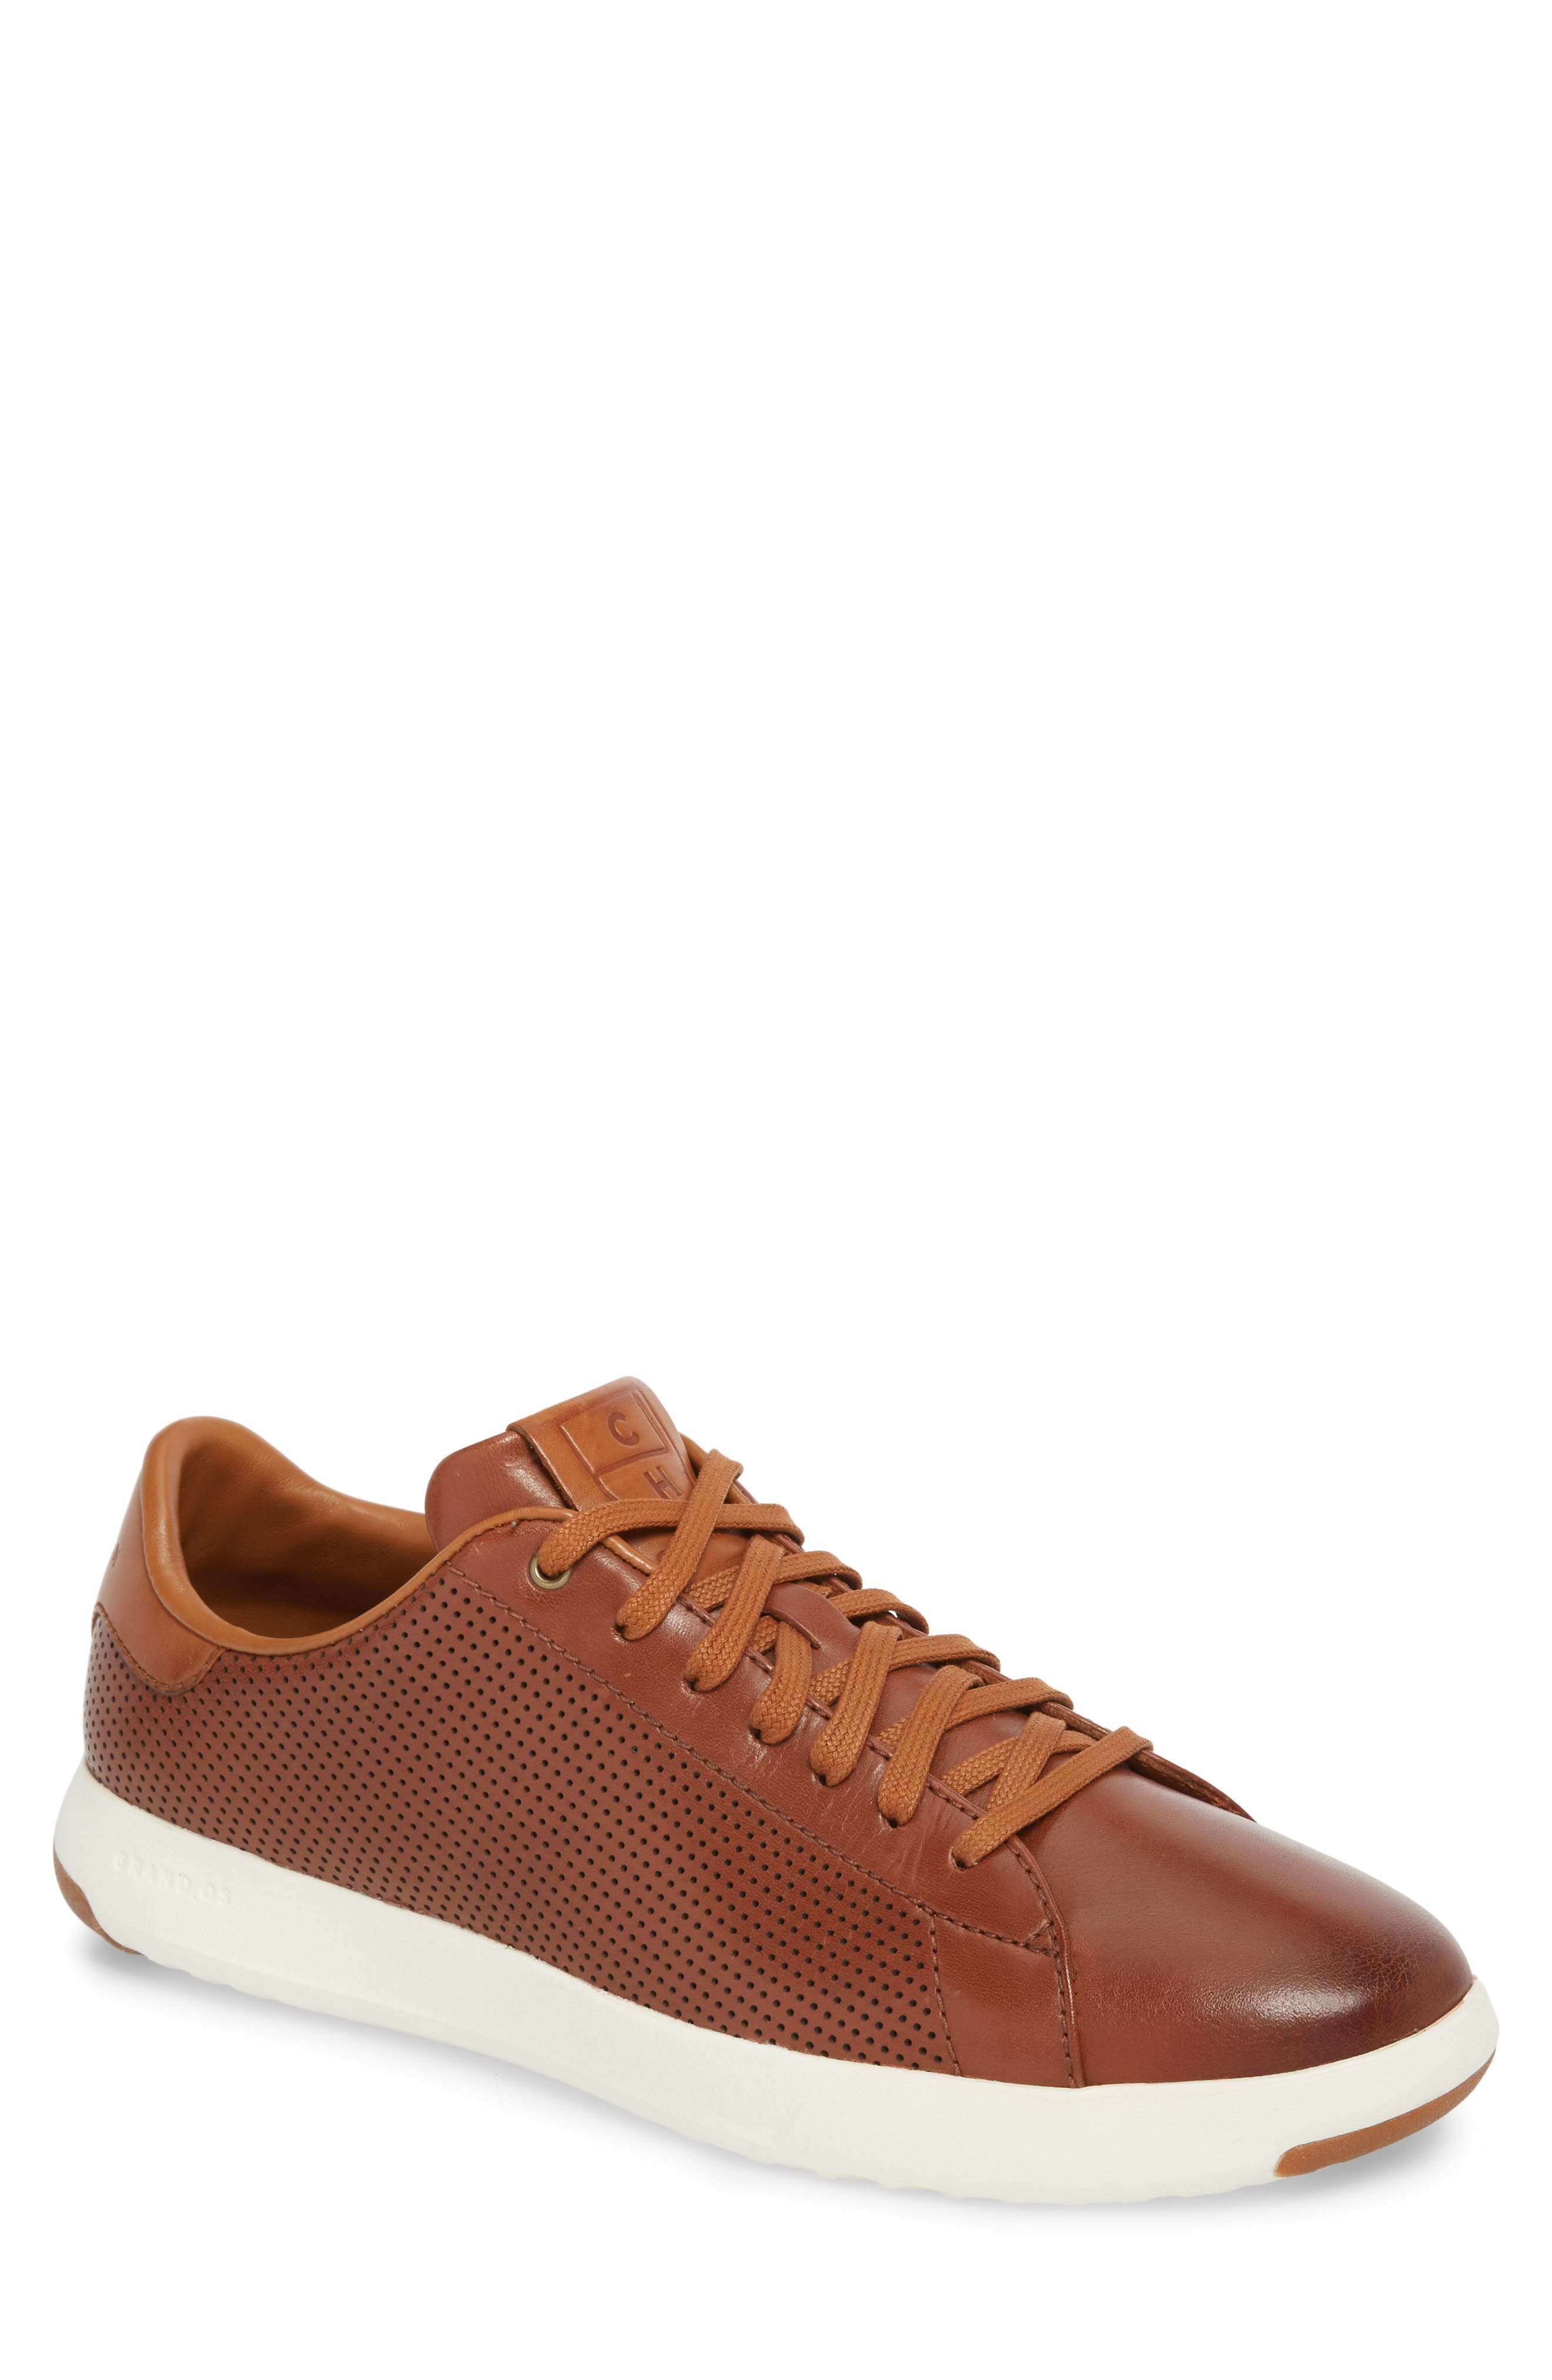 GrandPrø Perforated Low Top Sneaker,                             Main thumbnail 1, color,                             WOODBURY LEATHER